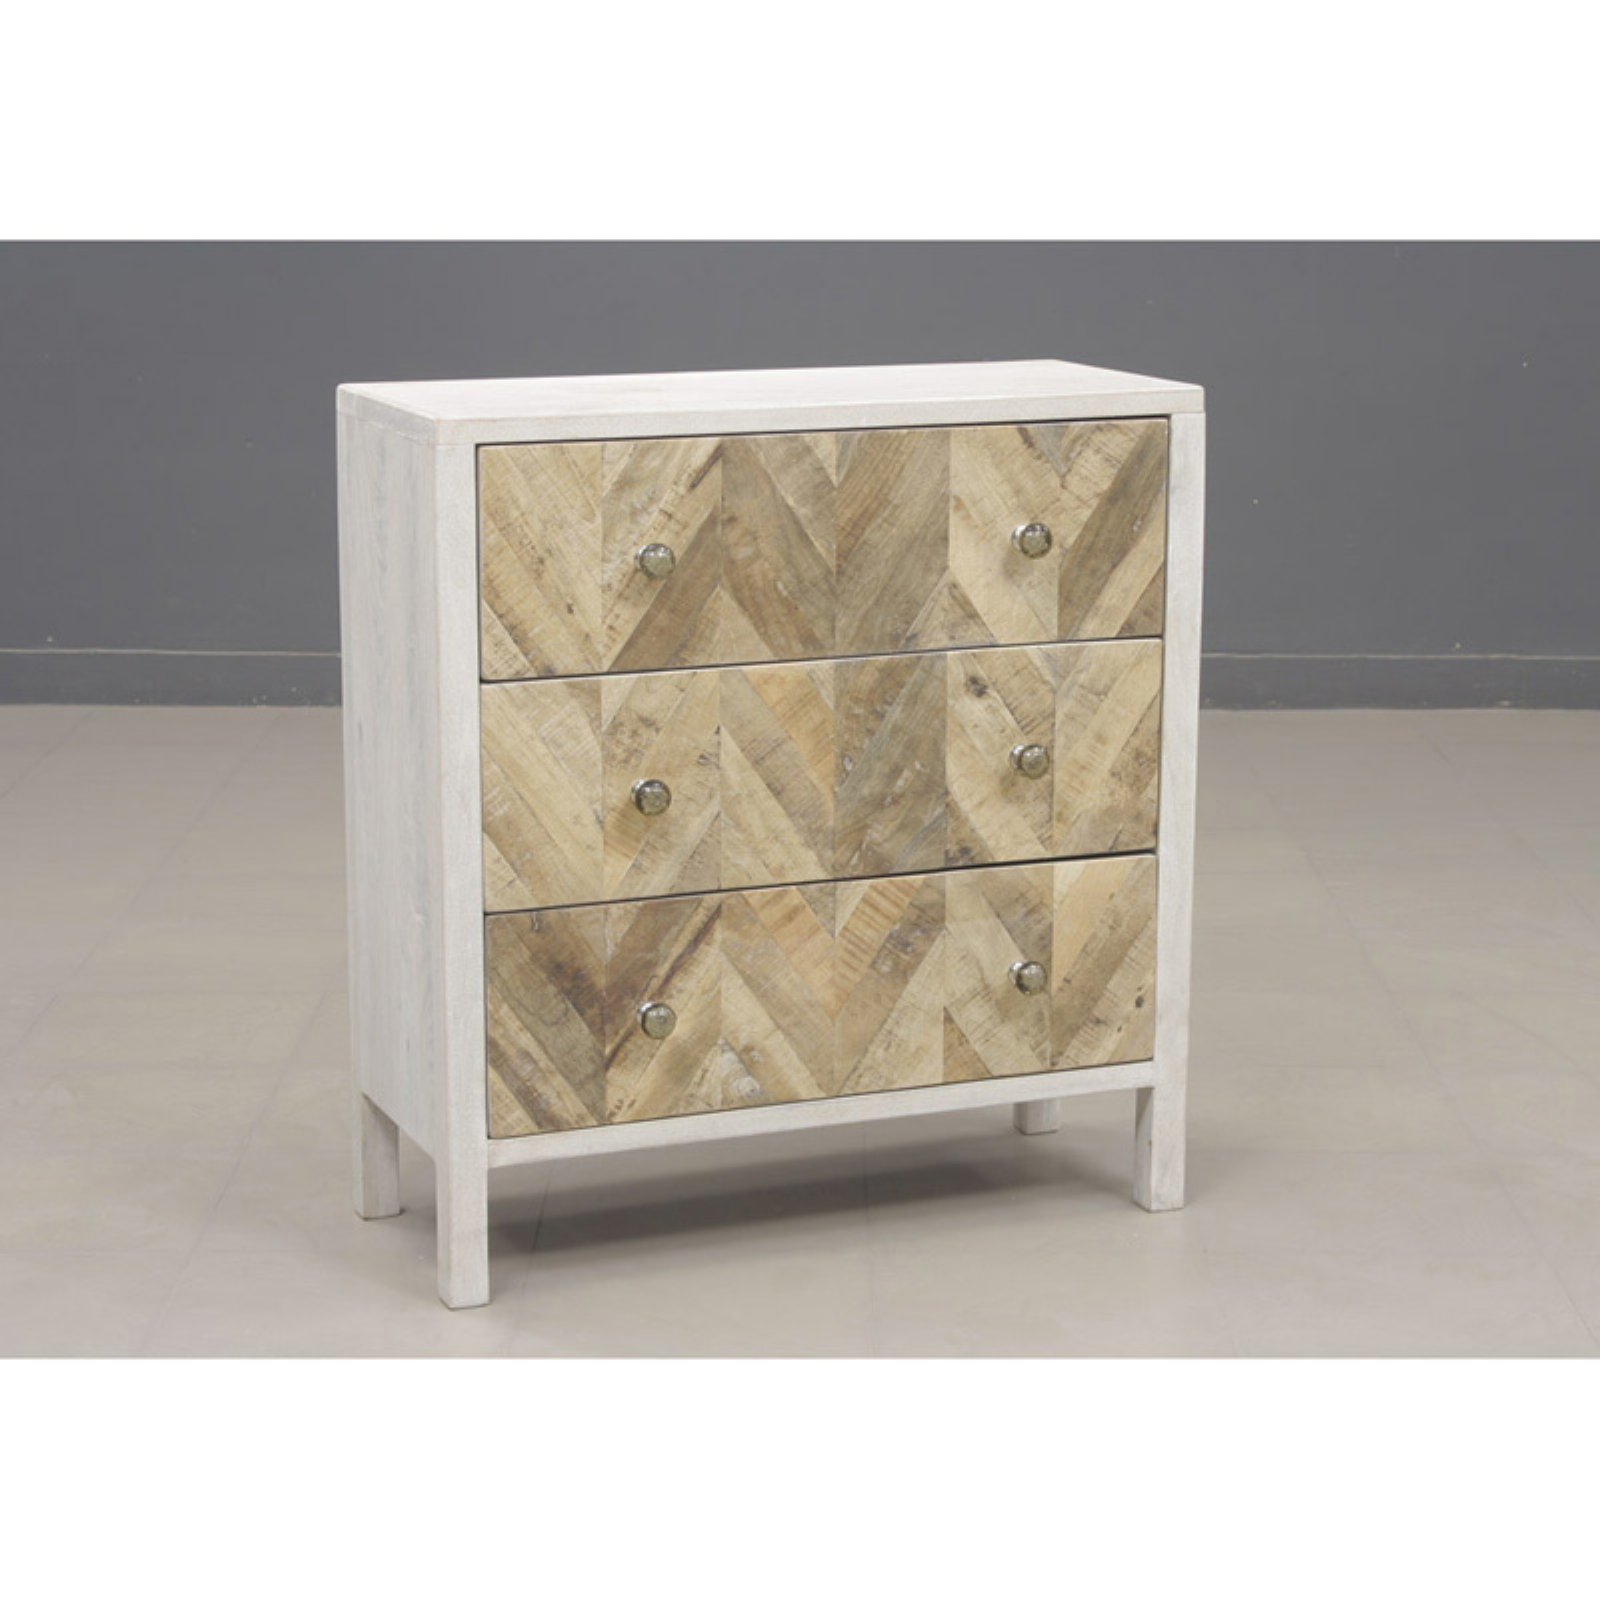 Stein World Darma 3 Drawer Accent Chest